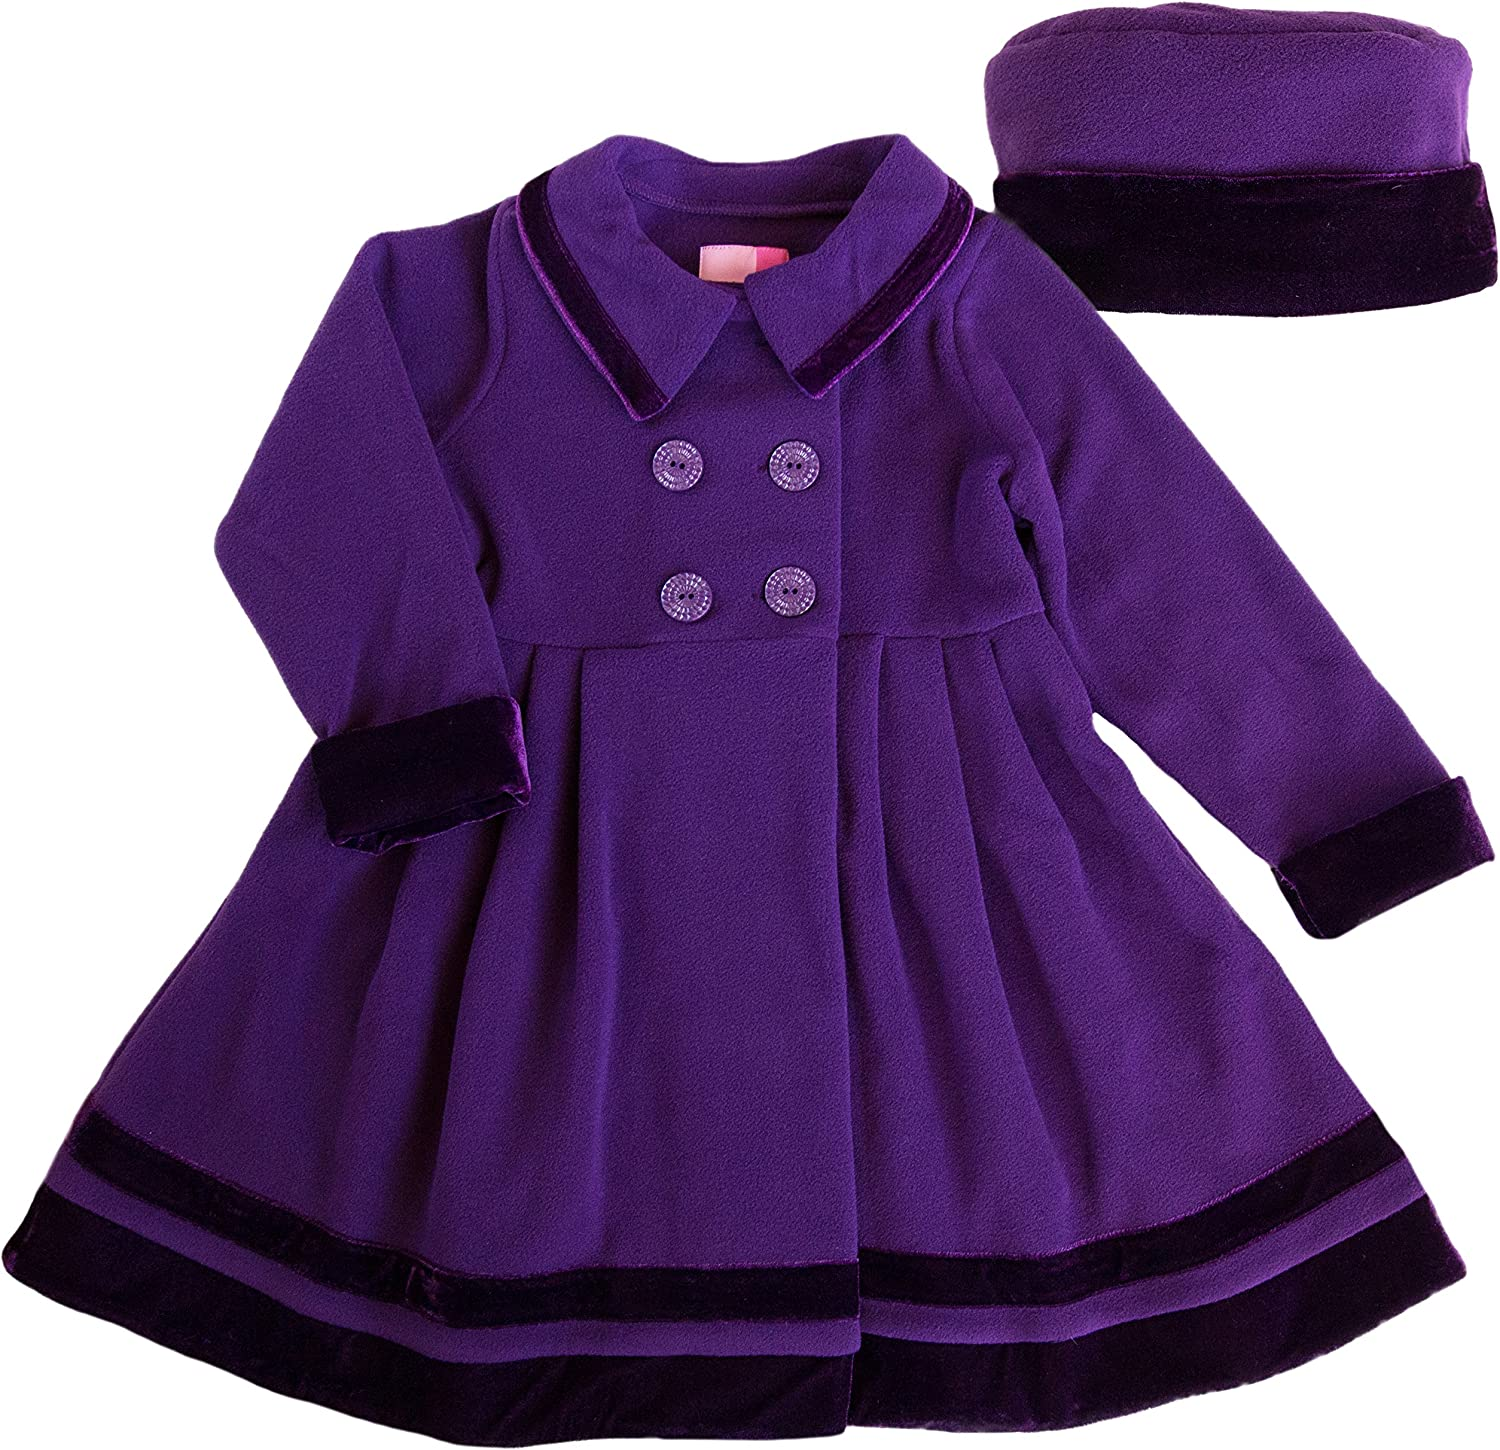 Good Lad 2//6X Girls Double Breasted Jewel Tone Fleece Coat with Velvet Trim and Matching Hat